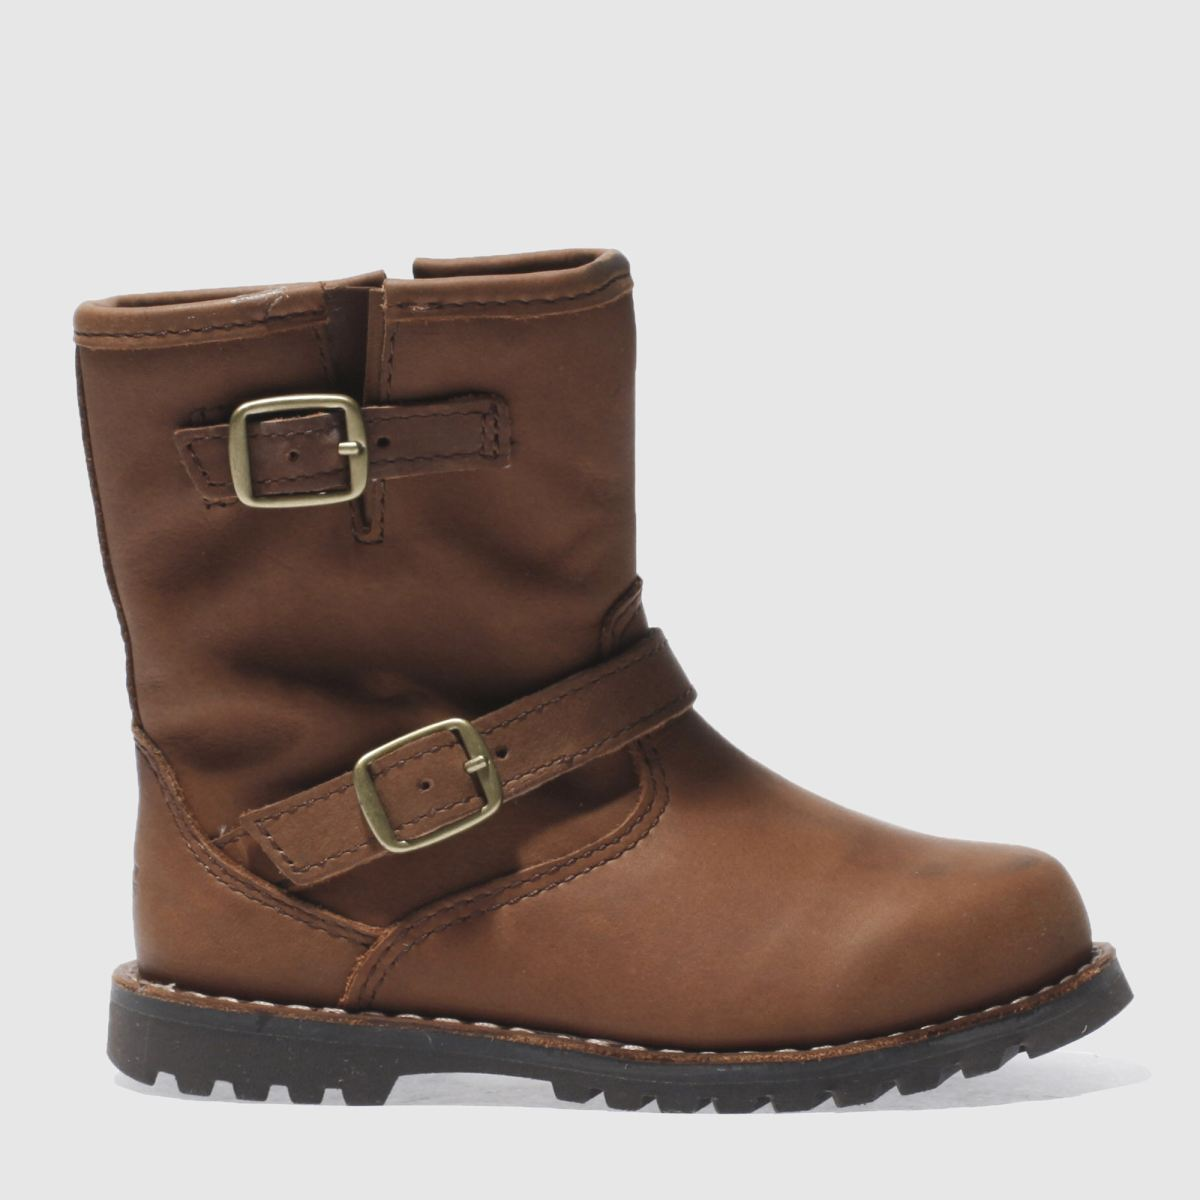 Thank for college girl ugg boots you